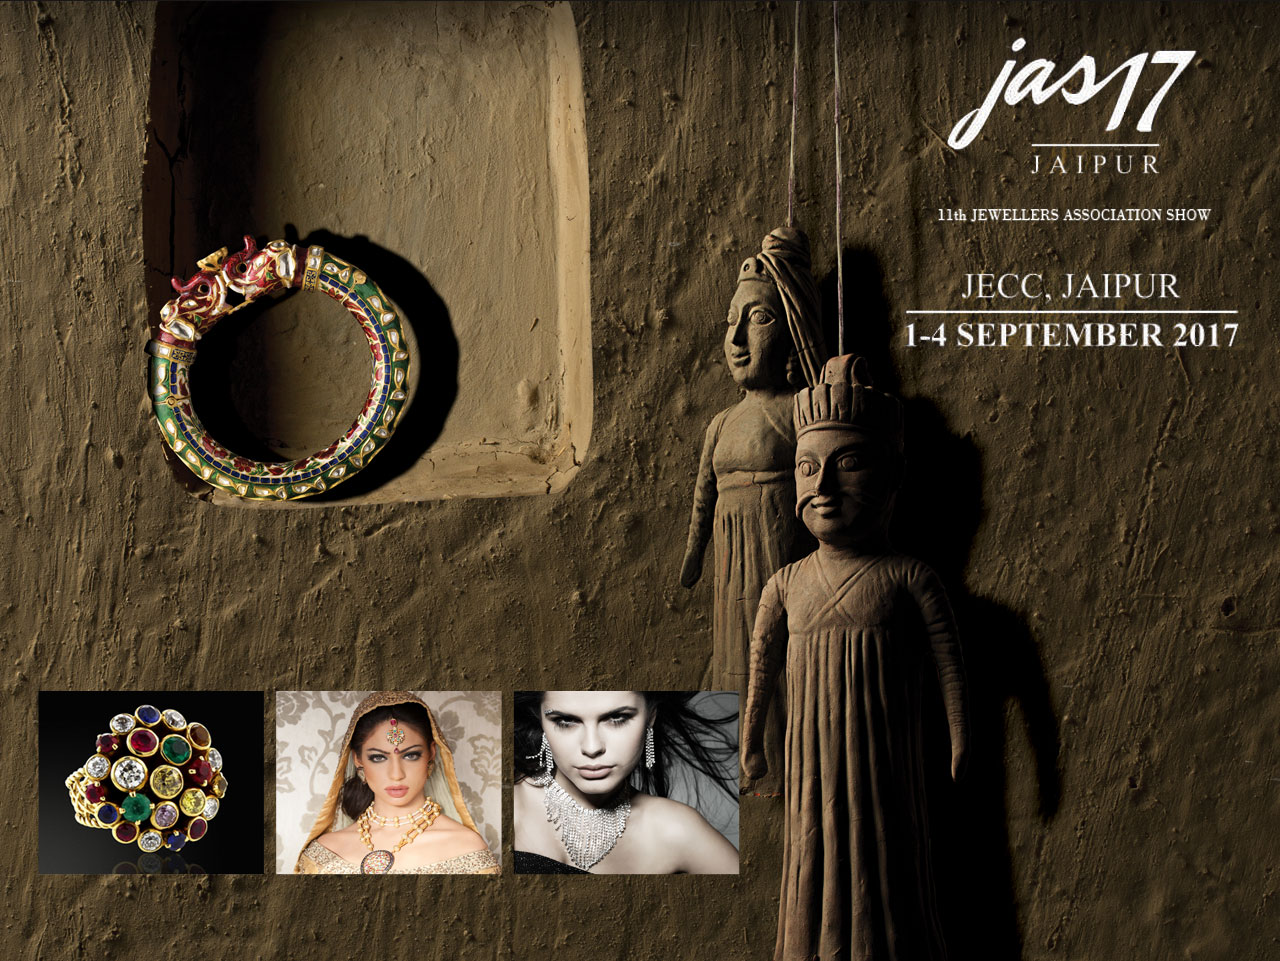 JAS-Jewellers Association Show 2017